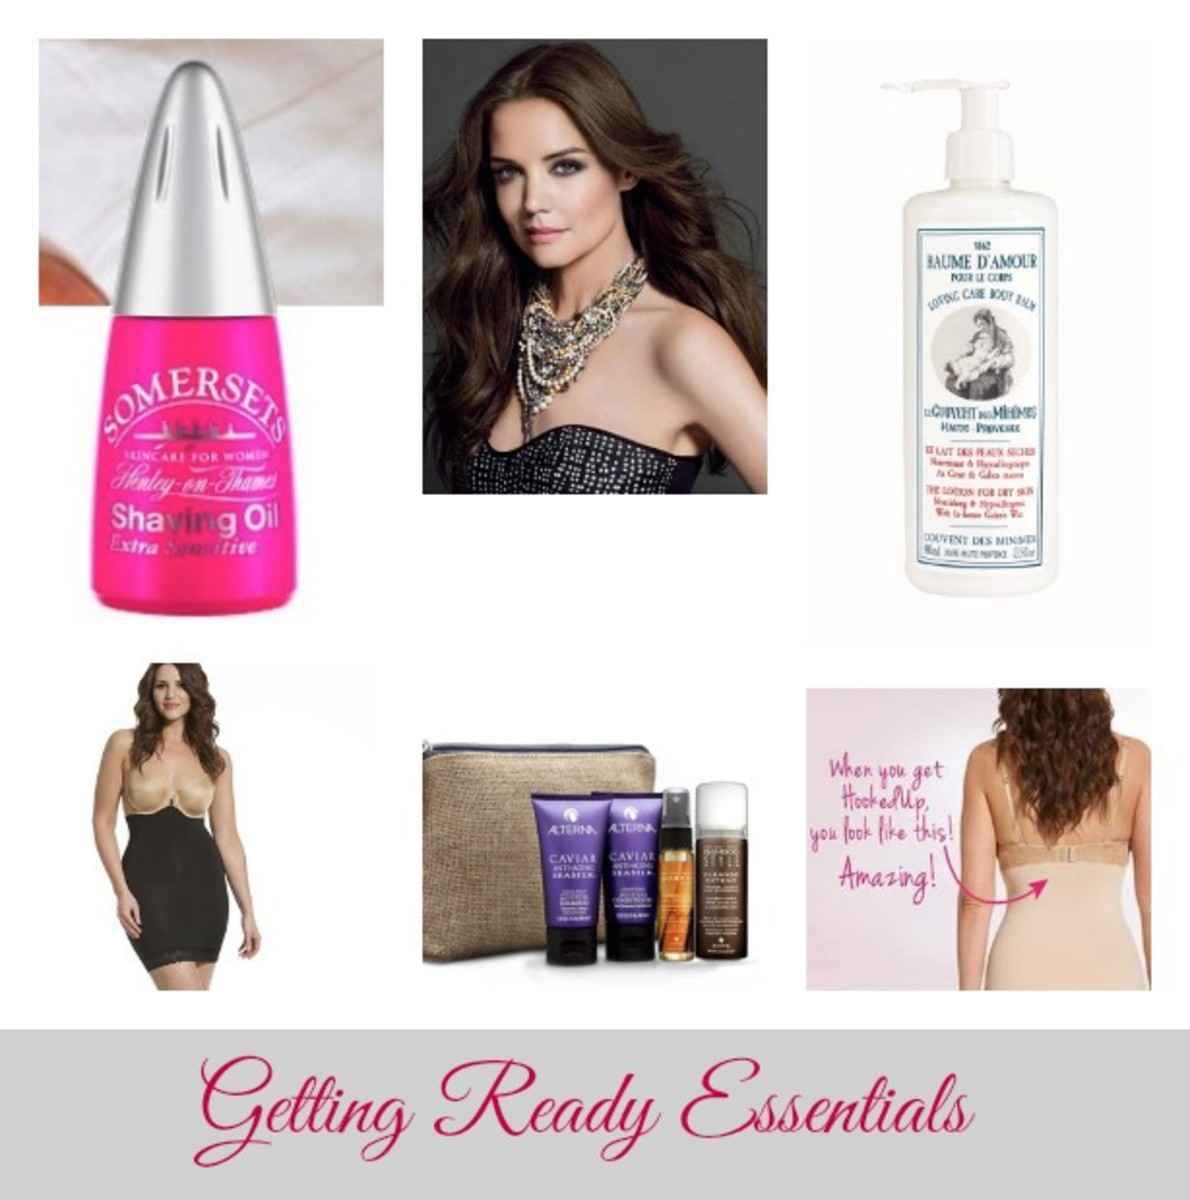 Getting Ready Essentials, Katie Holmes